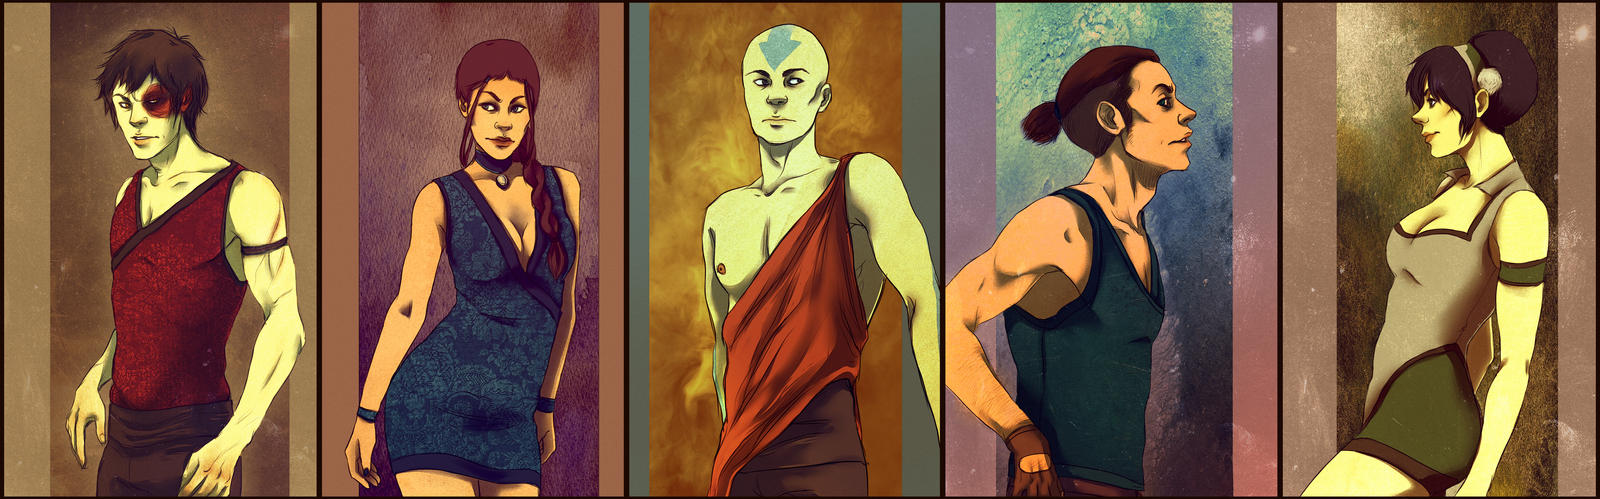 Avatar - The Last Airbender by andrahilde on DeviantArt